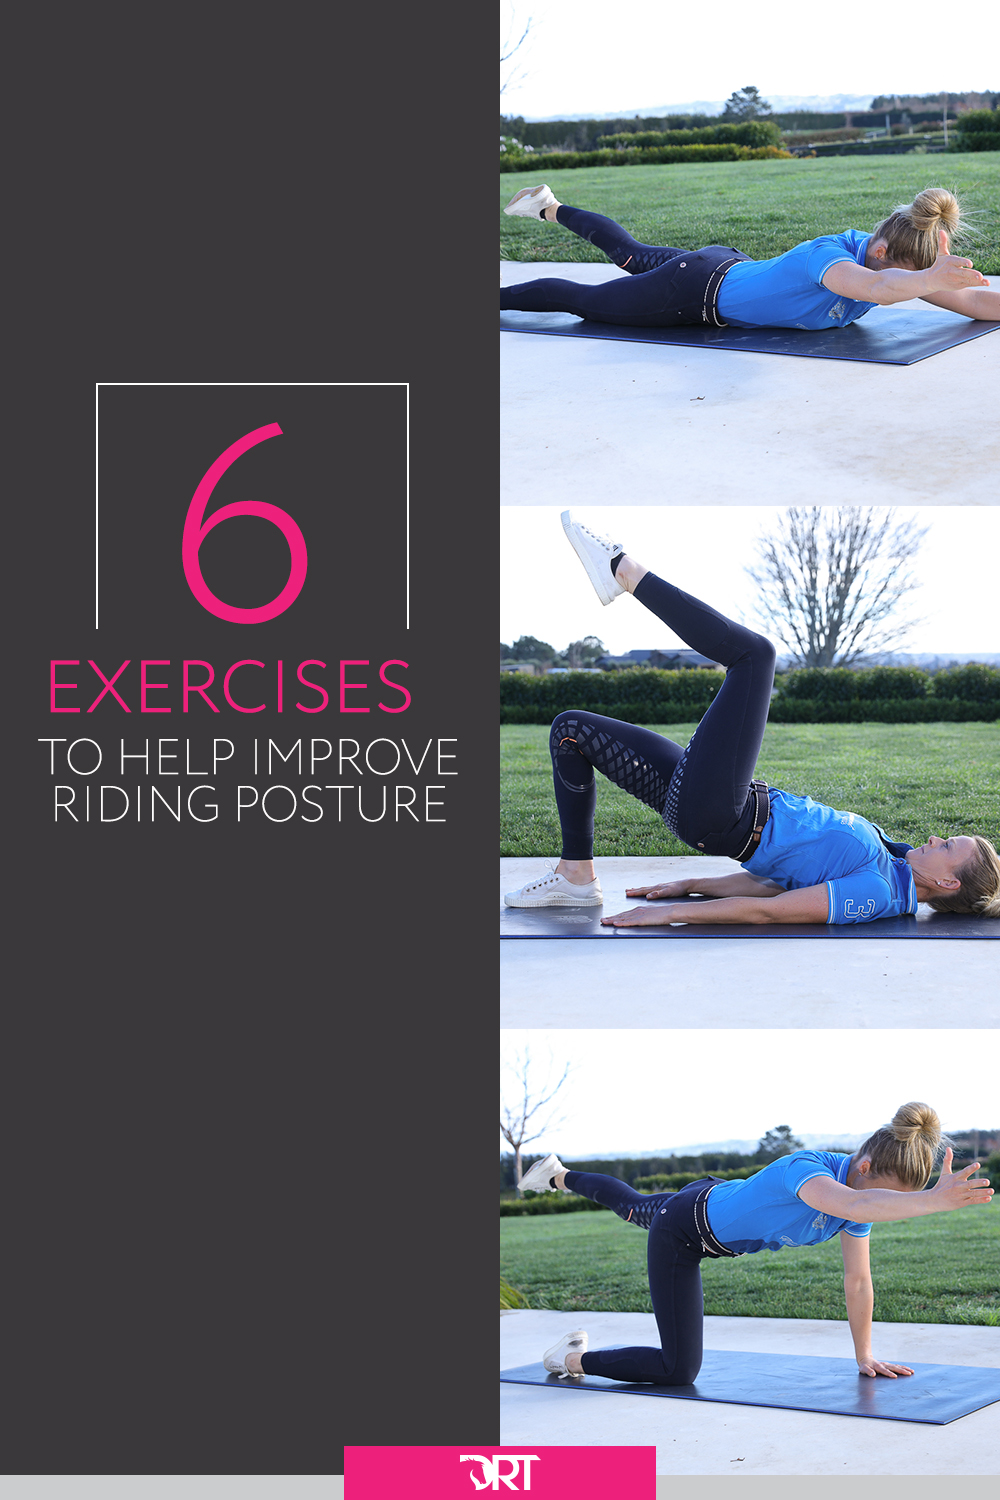 Here are my top dressage exercises that you can do at home to help improve your position and posture in the saddle. #dressageexercises #dressage #dressagetraining